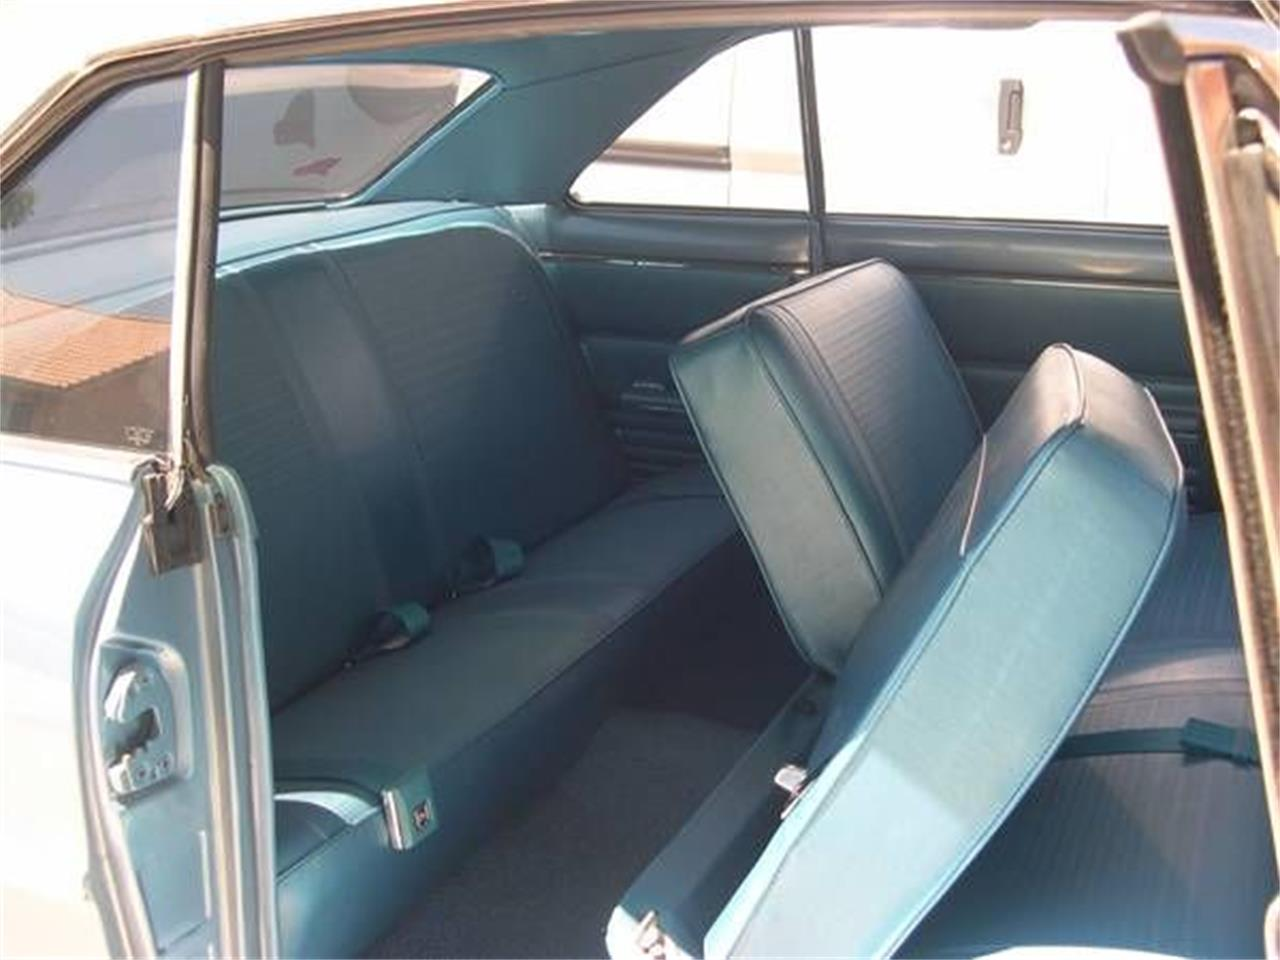 1967 Chevrolet Nova II for sale in Cadillac, MI – photo 20